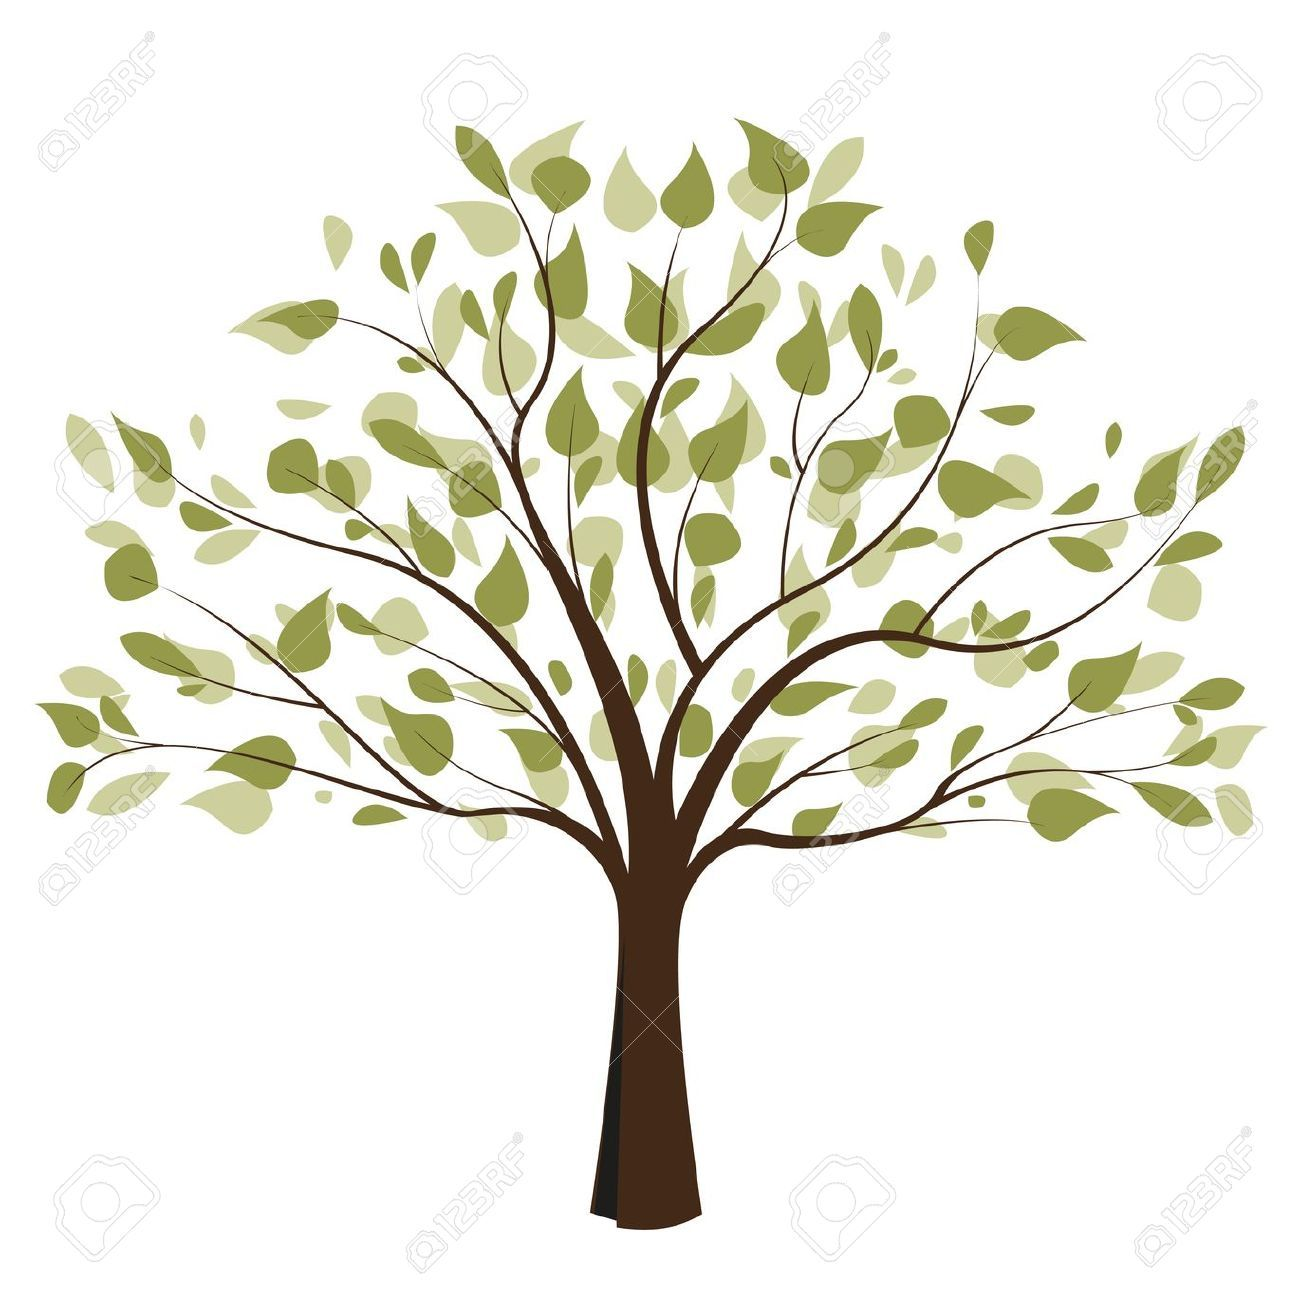 Tree Of Life Black And White Clipart Google Search Tree Cartoon Trees Tree Of Life Art Tree Illustration Download in under 30 seconds. tree of life black and white clipart